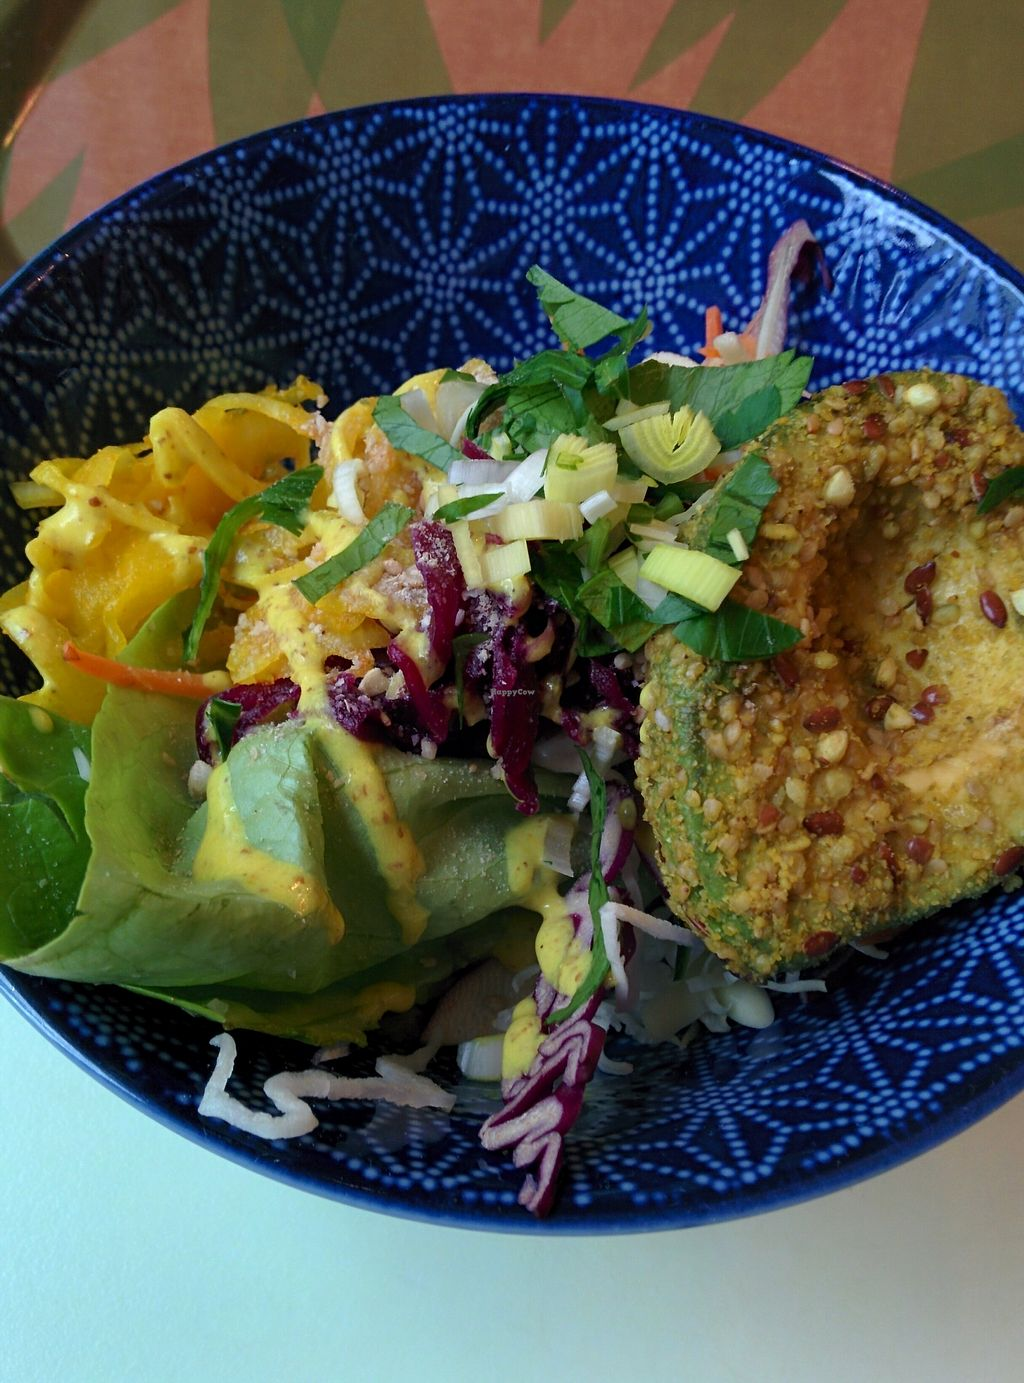 """Photo of Le Botaniste  by <a href=""""/members/profile/CLRtraveller"""">CLRtraveller</a> <br/>Superseed Avocado <br/> February 8, 2018  - <a href='/contact/abuse/image/59241/356314'>Report</a>"""